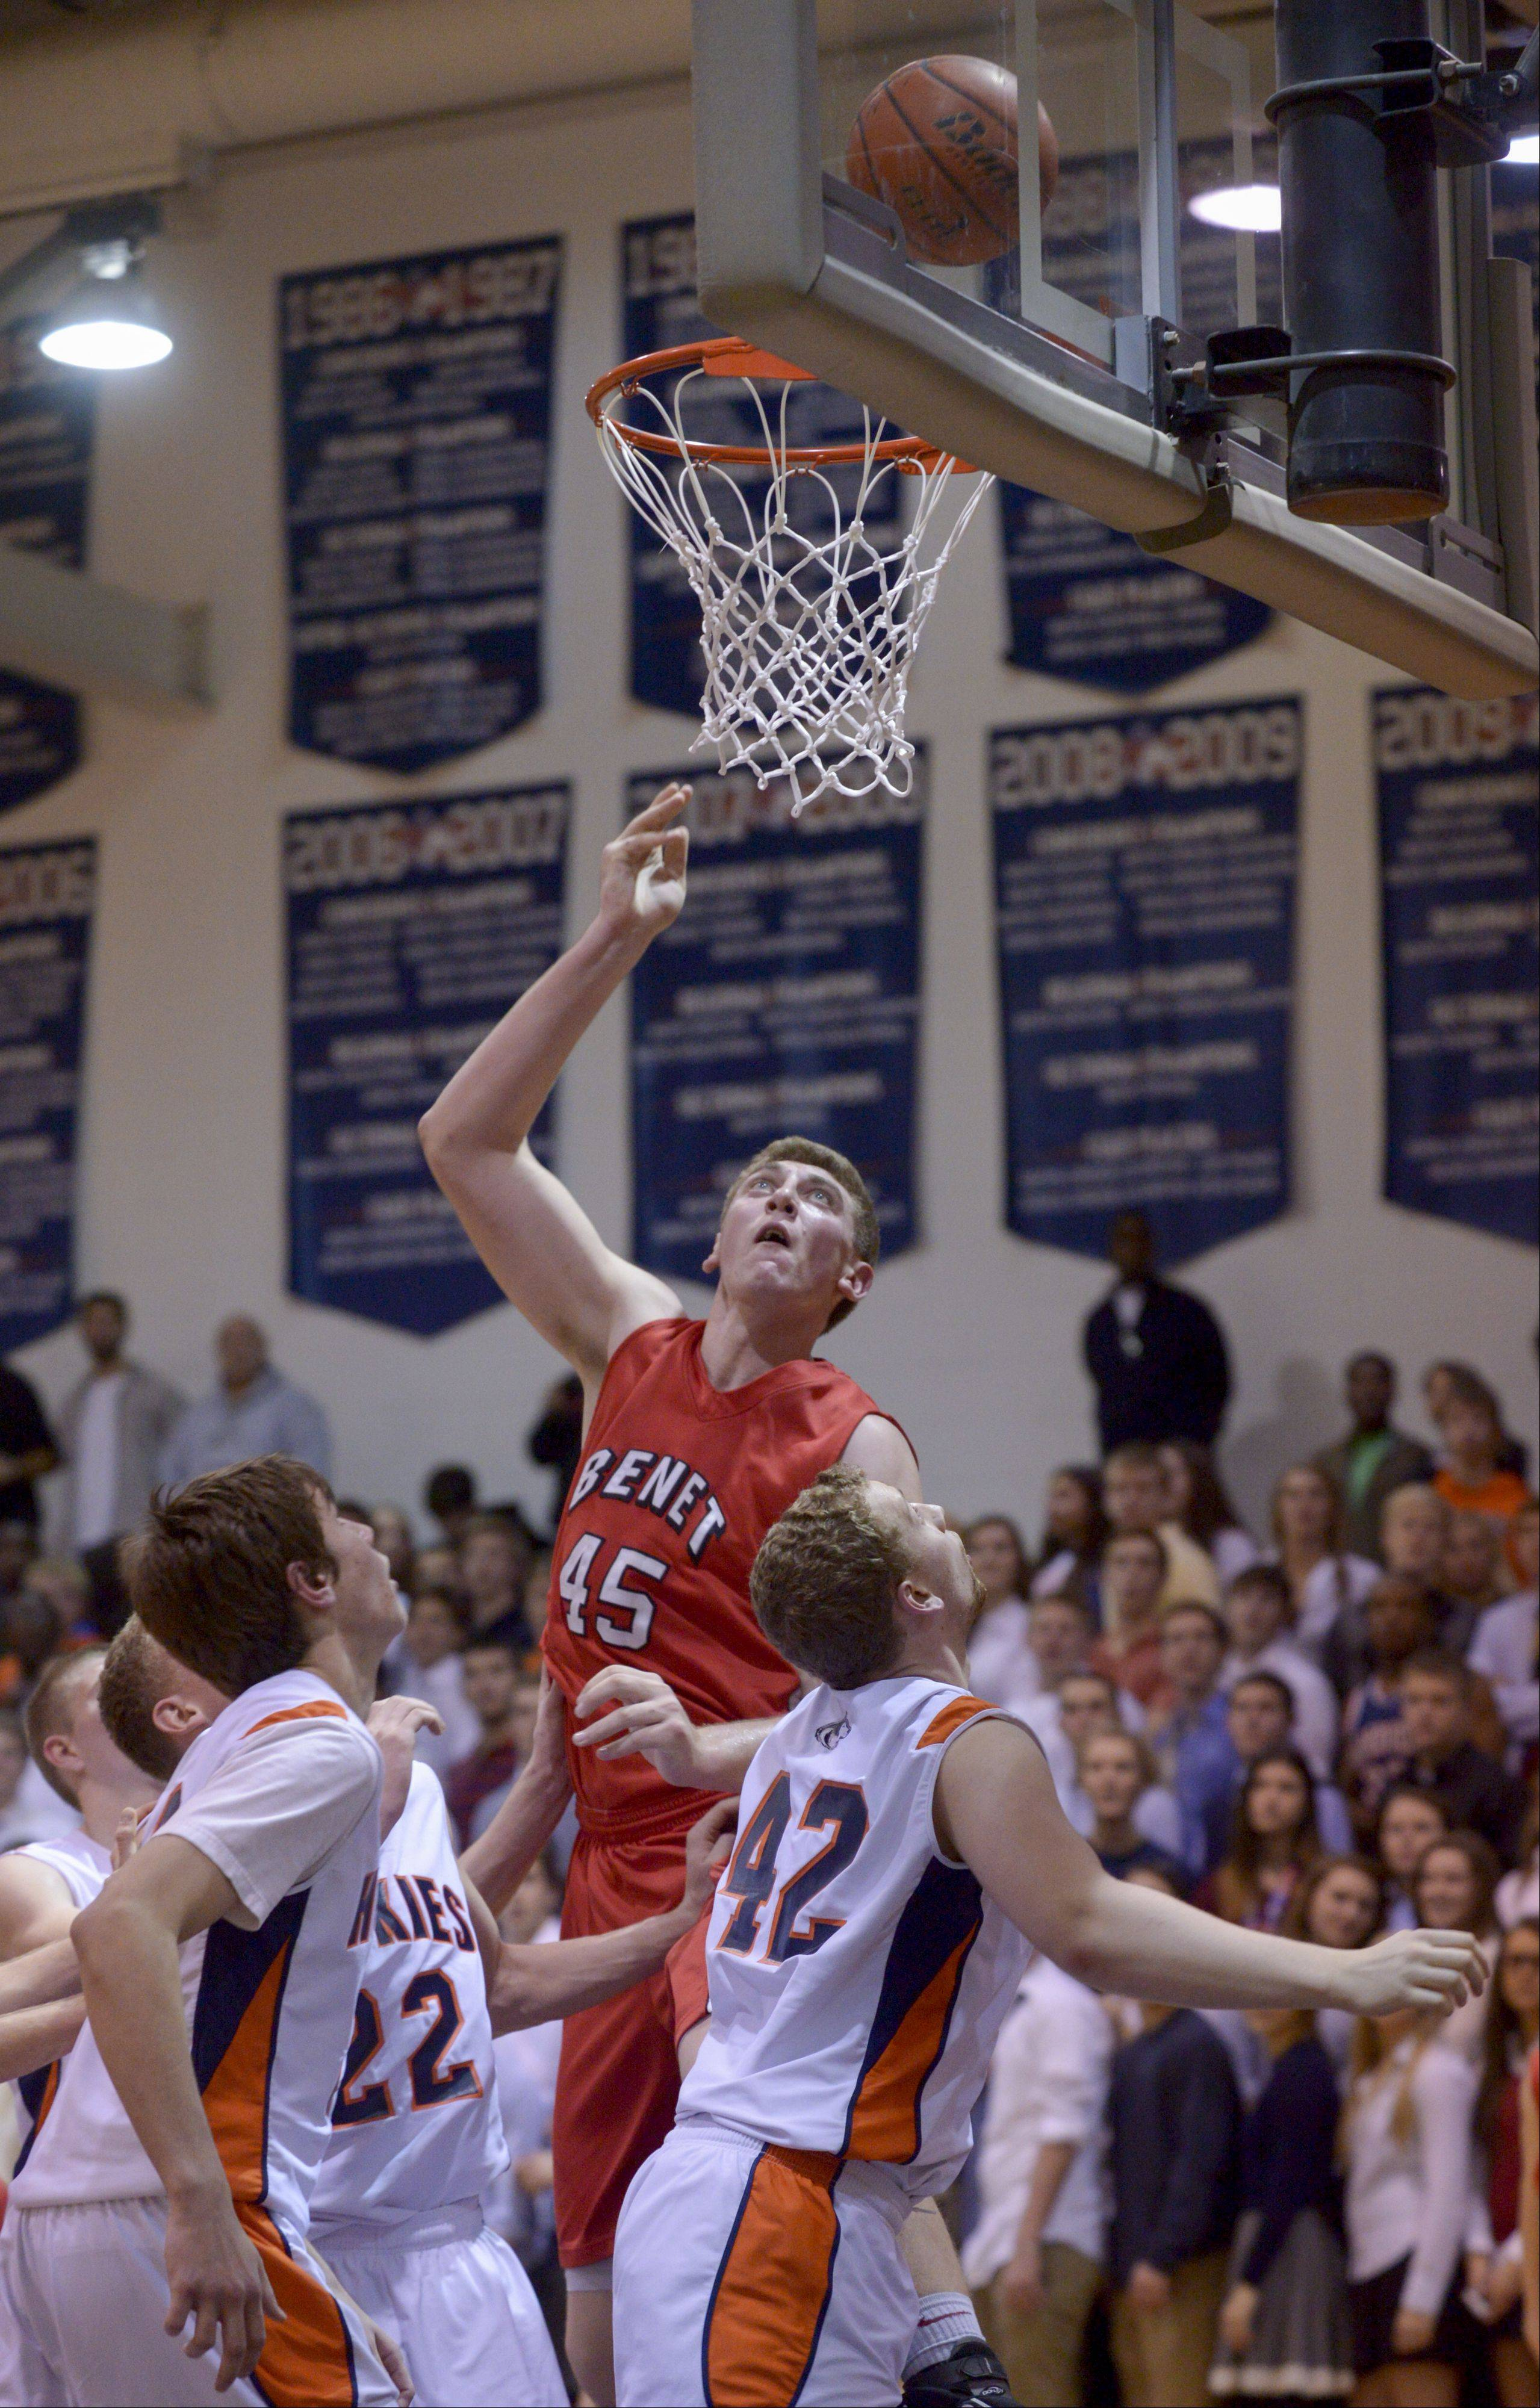 Benet's Sean O'Mara takes a shot over Naperville North defenders, during in boys basketball in Naperville Sunday.